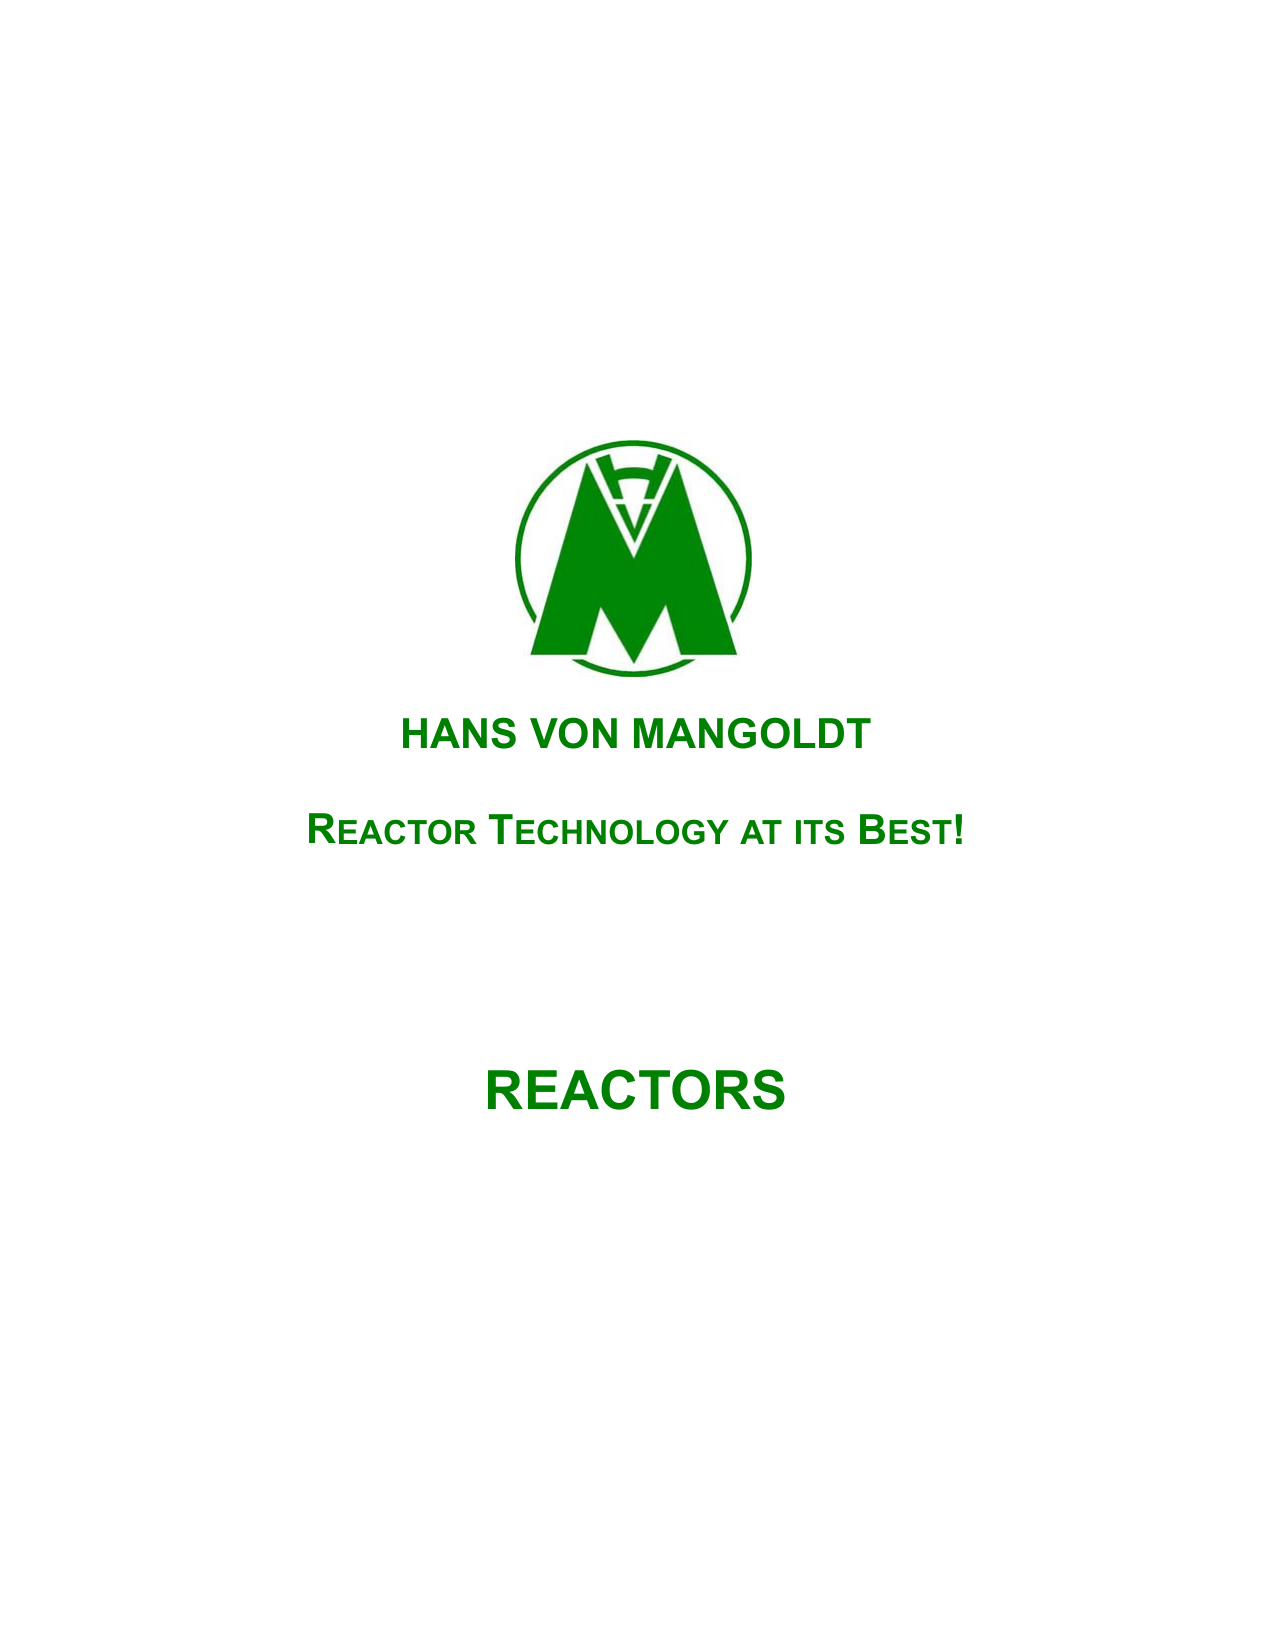 reactors - Allied Industrial Marketing